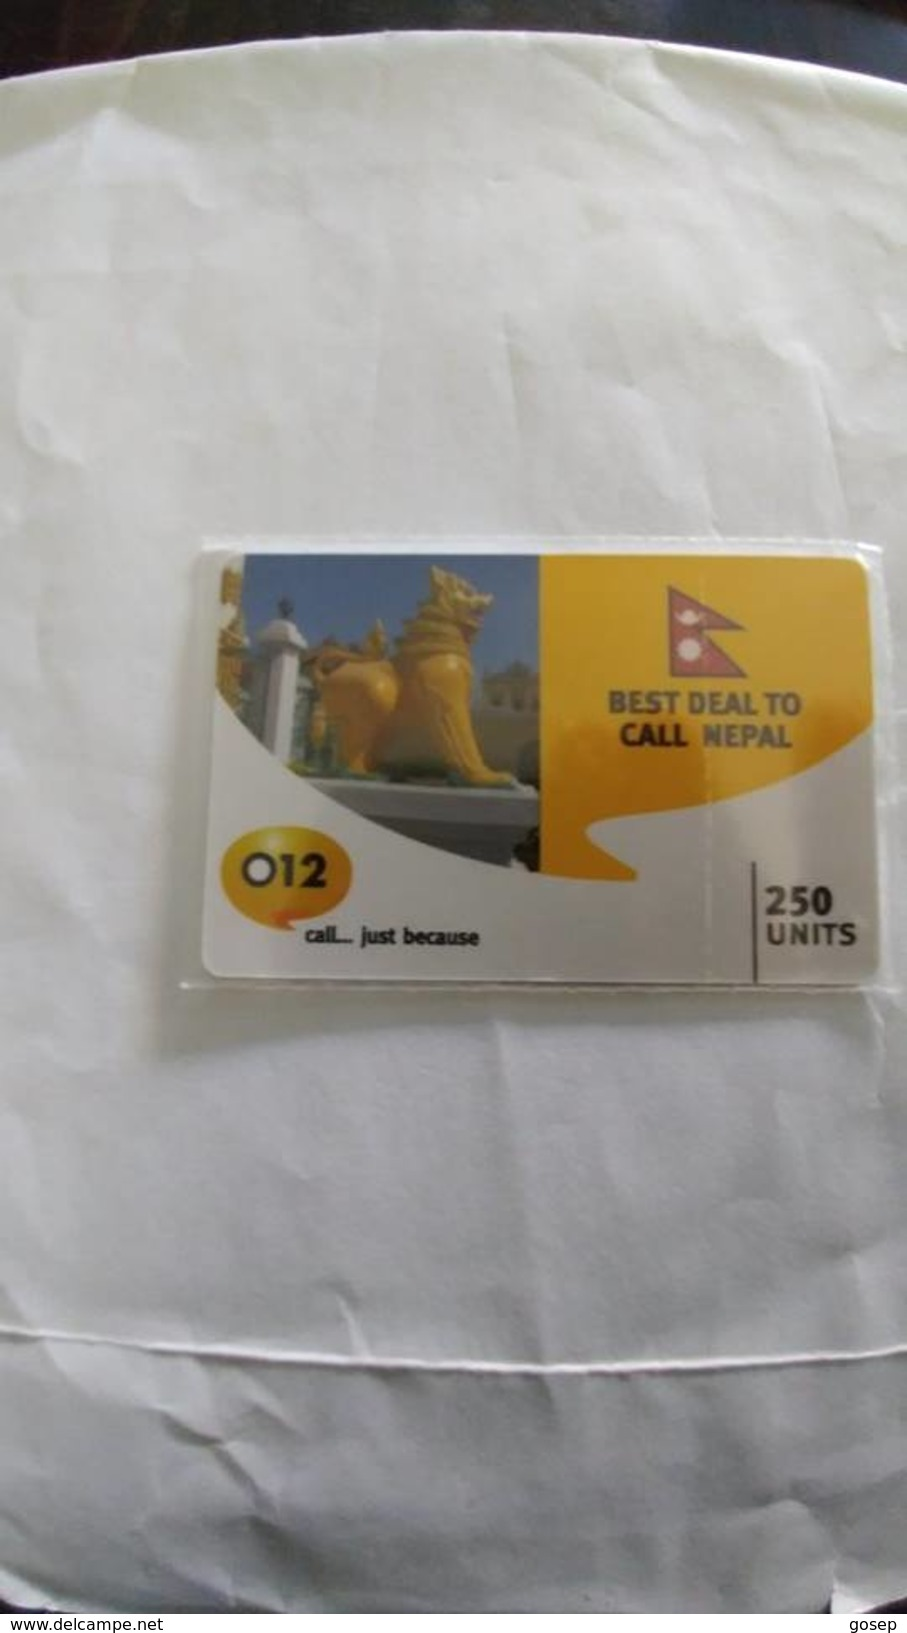 Israel-best Deal To Call Nepal-(1)-flag-(250units)-(012call Just Because)-(1.5.2008)-mint Card - Nepal